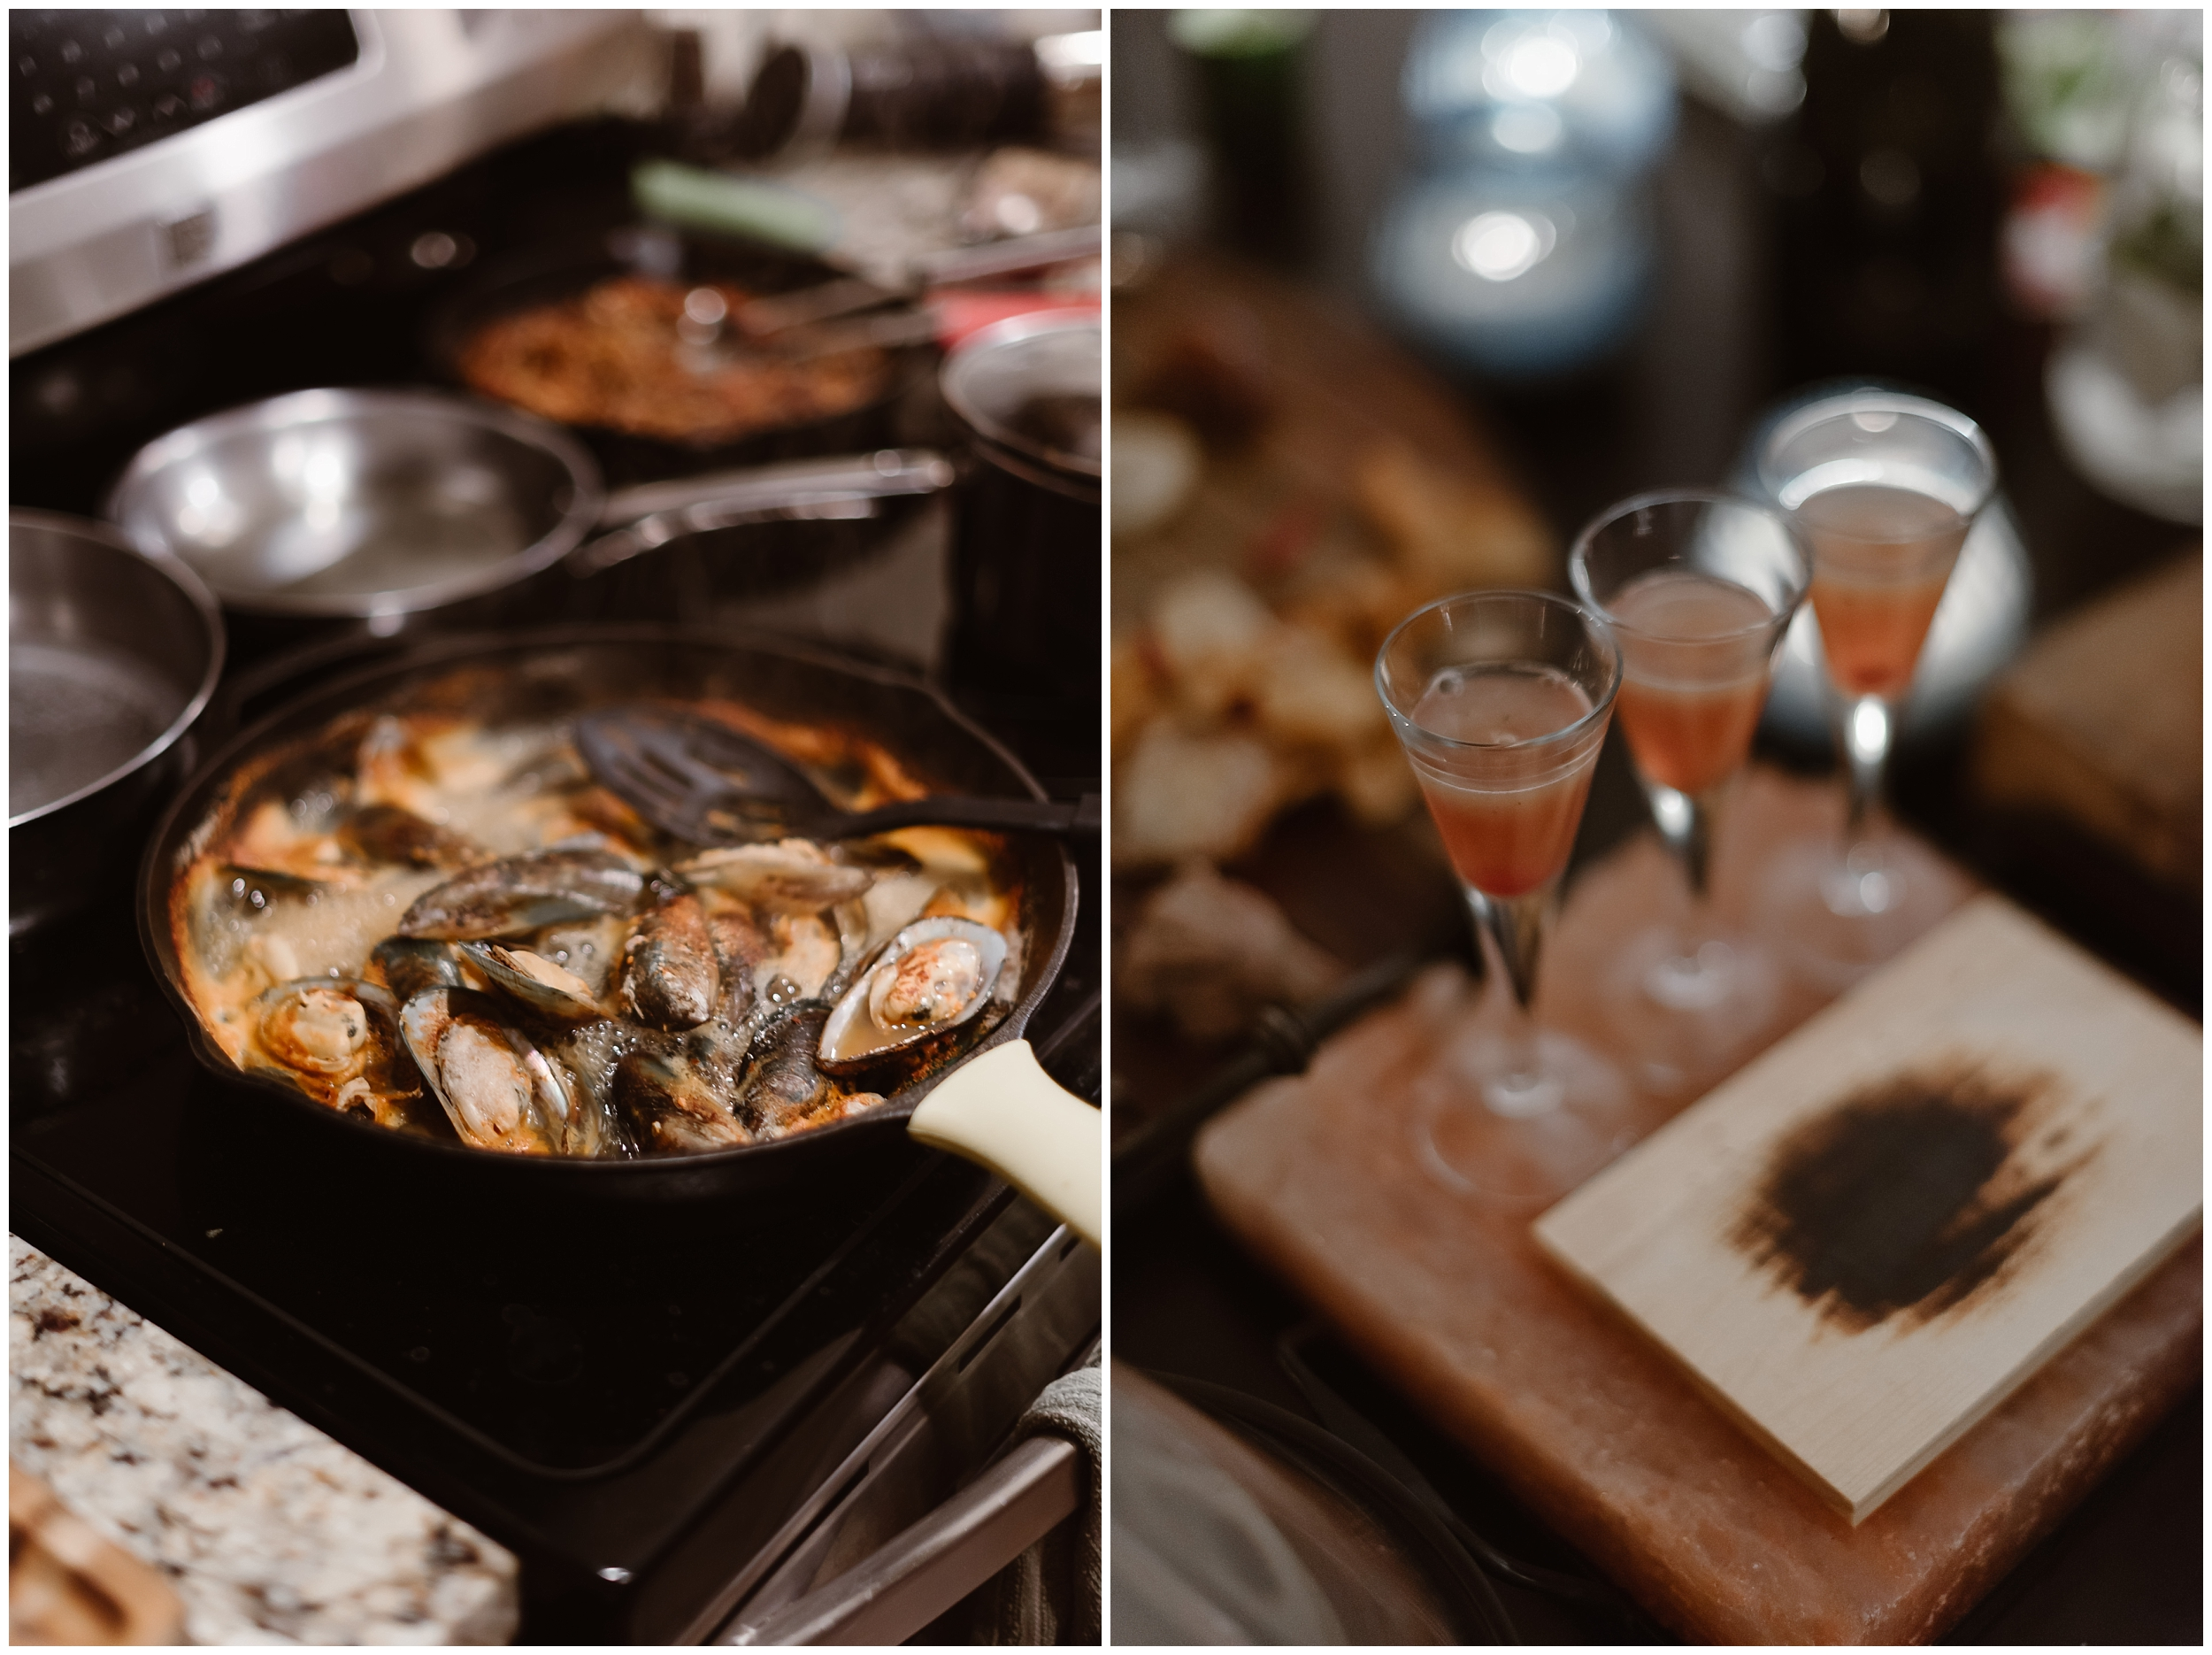 In these side-by-side elopement photos taken by Adventure Instead, the food Katie and Logan hired gourmet chefs to cook is being prepared for the party after eloping. In the photo on the left, a skillet full of mussels cooks. On the right, small glasses are filled with a pink-orange beverage.